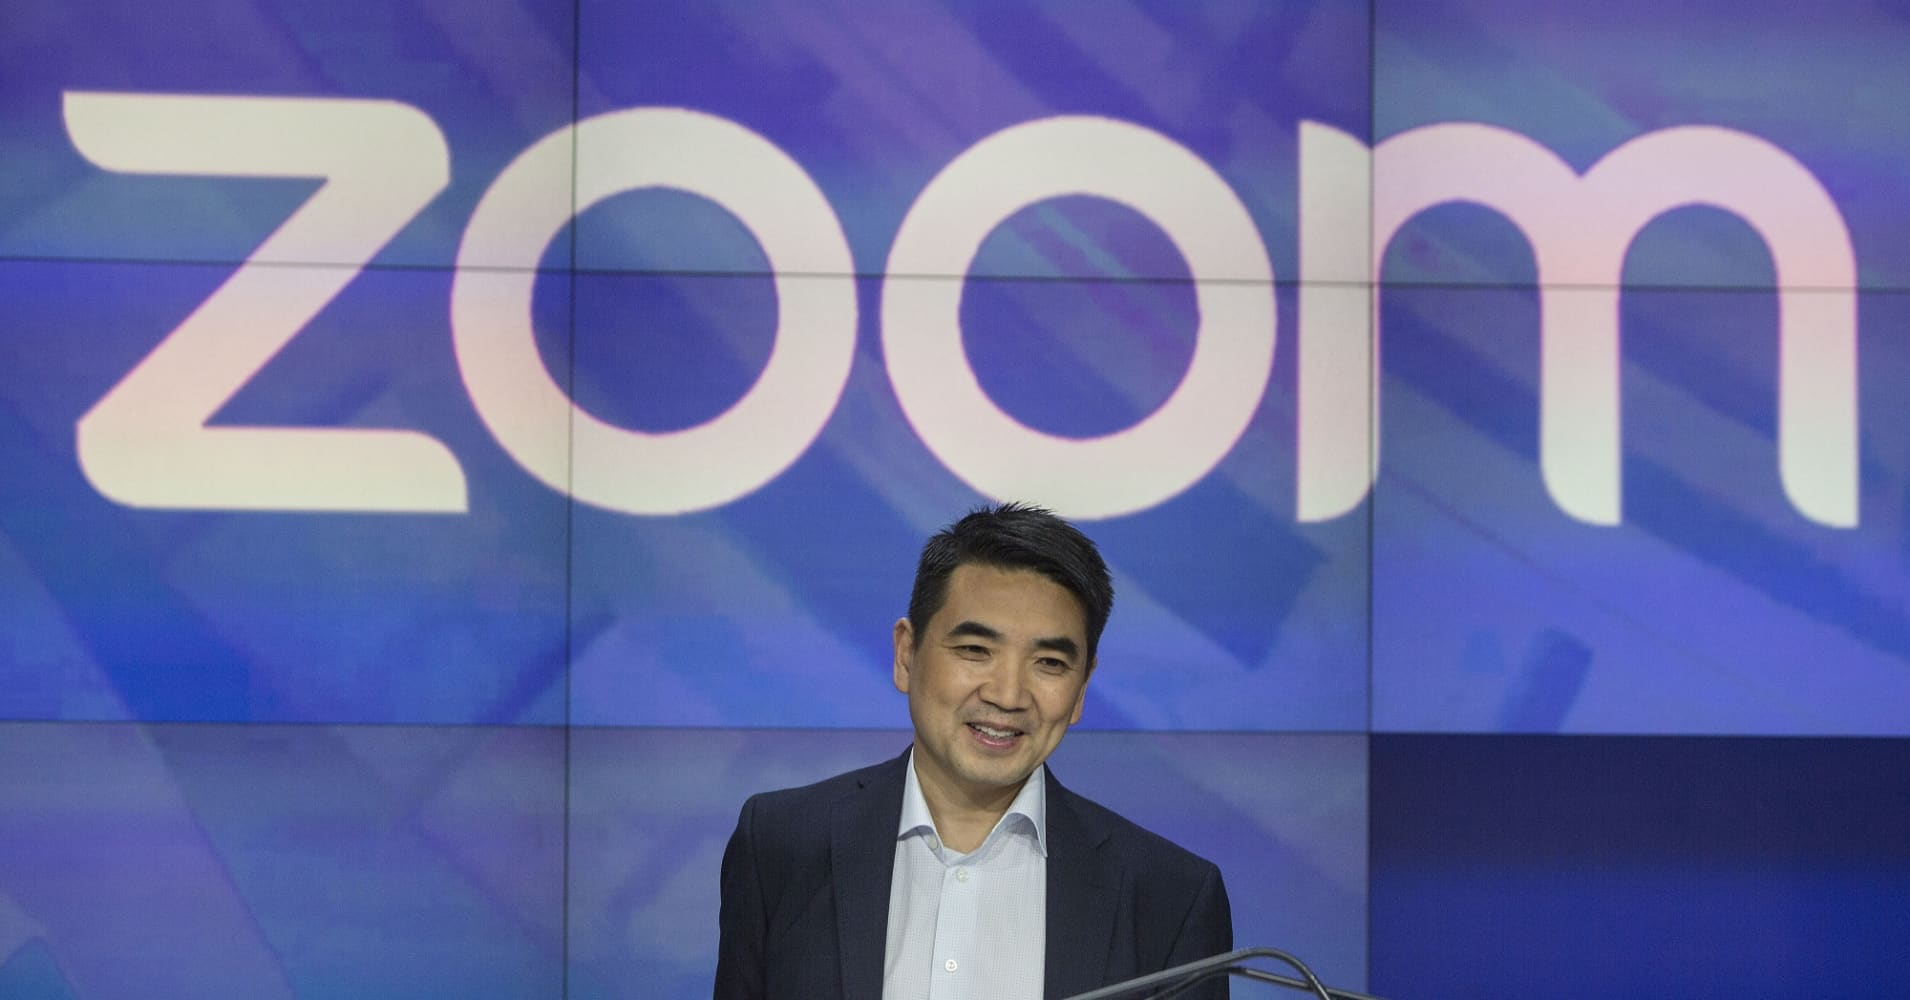 A Bill Gates speech inspired Zoom founder to start an internet business—now he's a billionaire